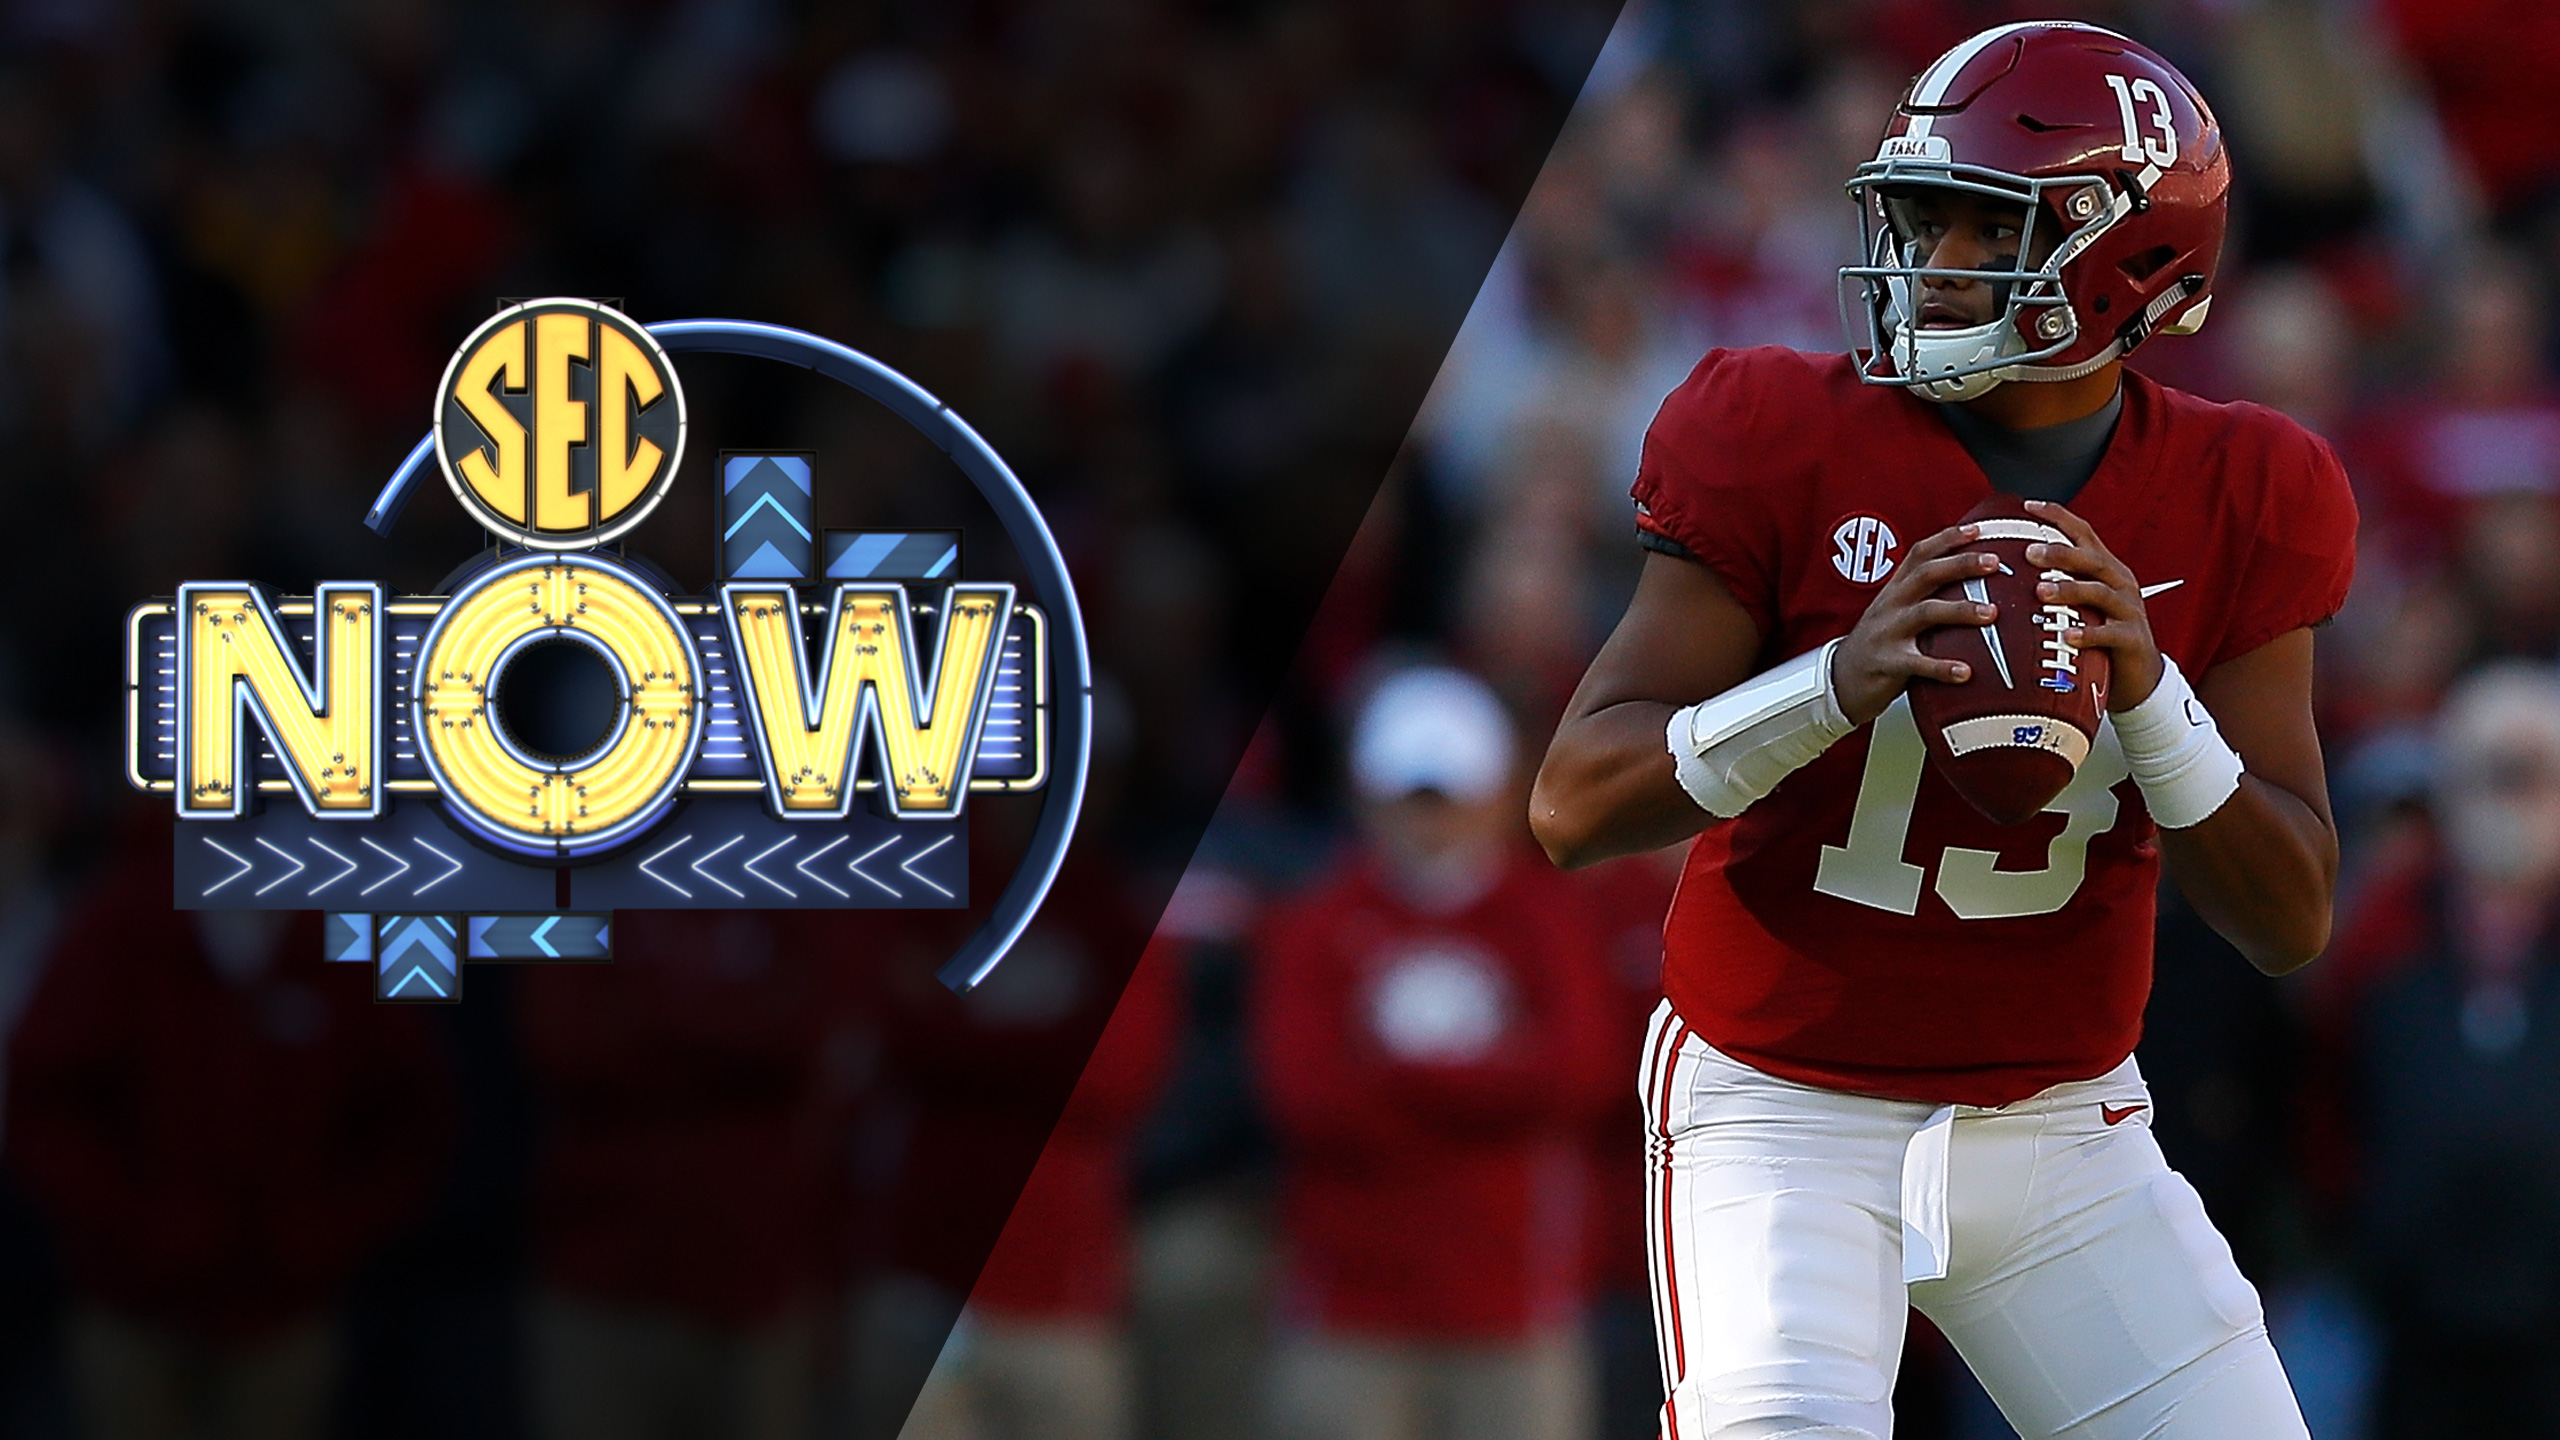 Sat, 11/10 - SEC Now Presented by Academy Sports + Outdoors